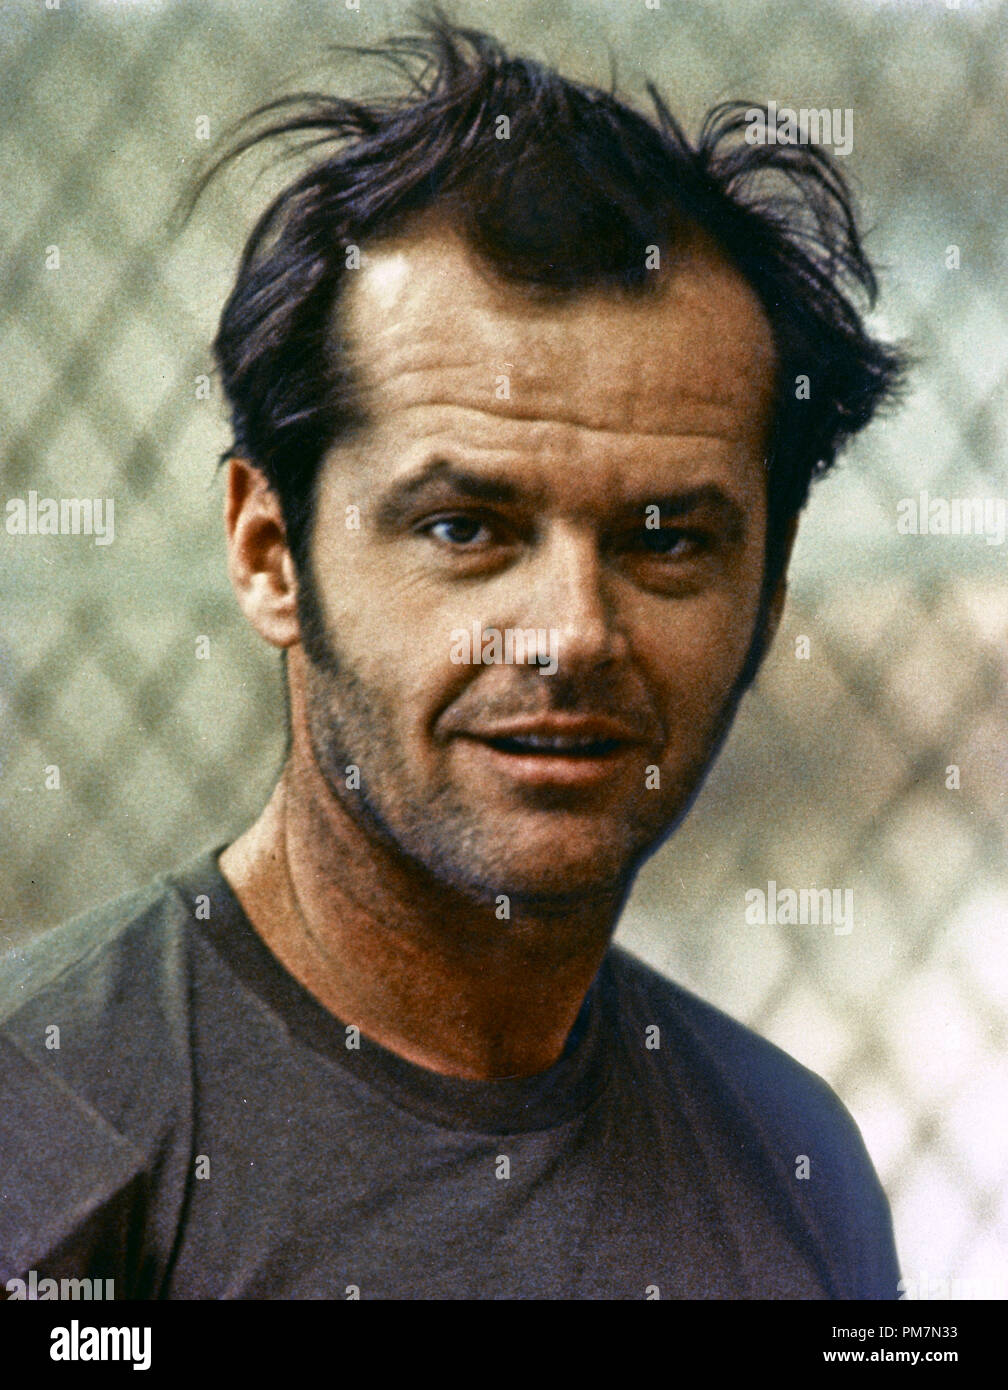 Jack Nicholson, 'One Flew Over the Cuckoo's Nest' 1975 UA File Reference # 31202_651THA - Stock Image